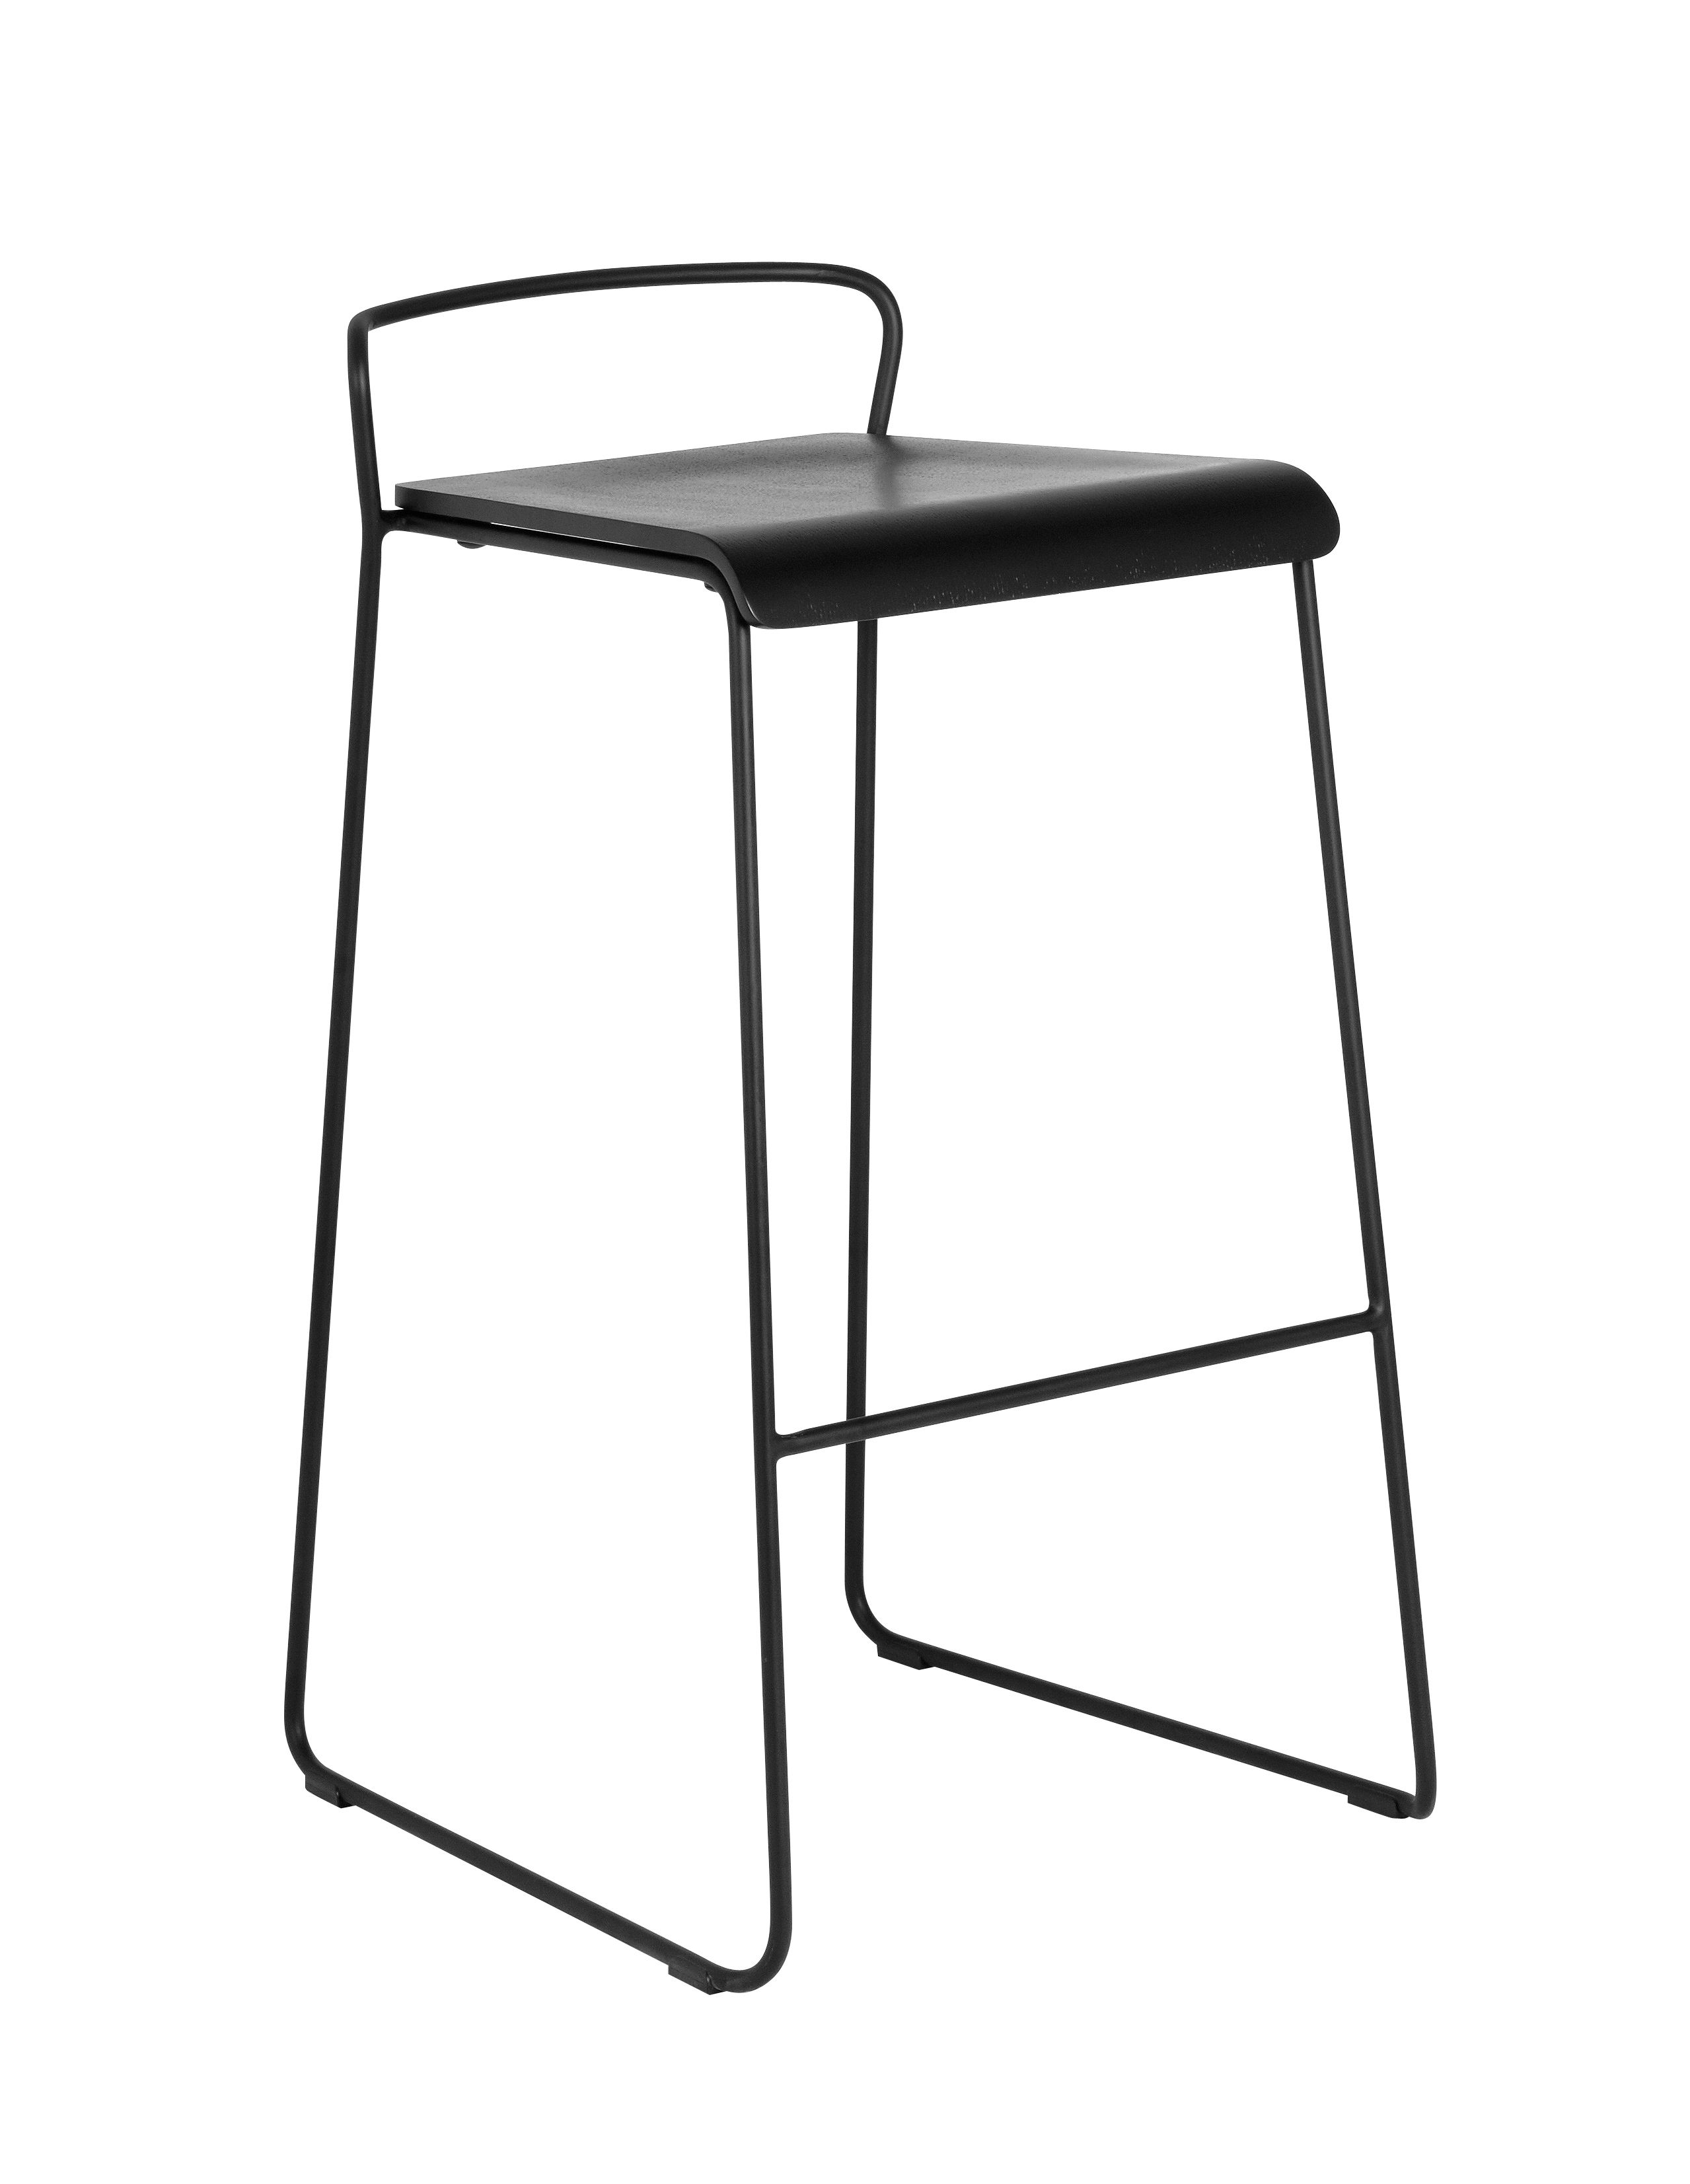 m a d furniture design lolli stool m a d furniture design rh pinterest com Tall Office Table high top tables for office